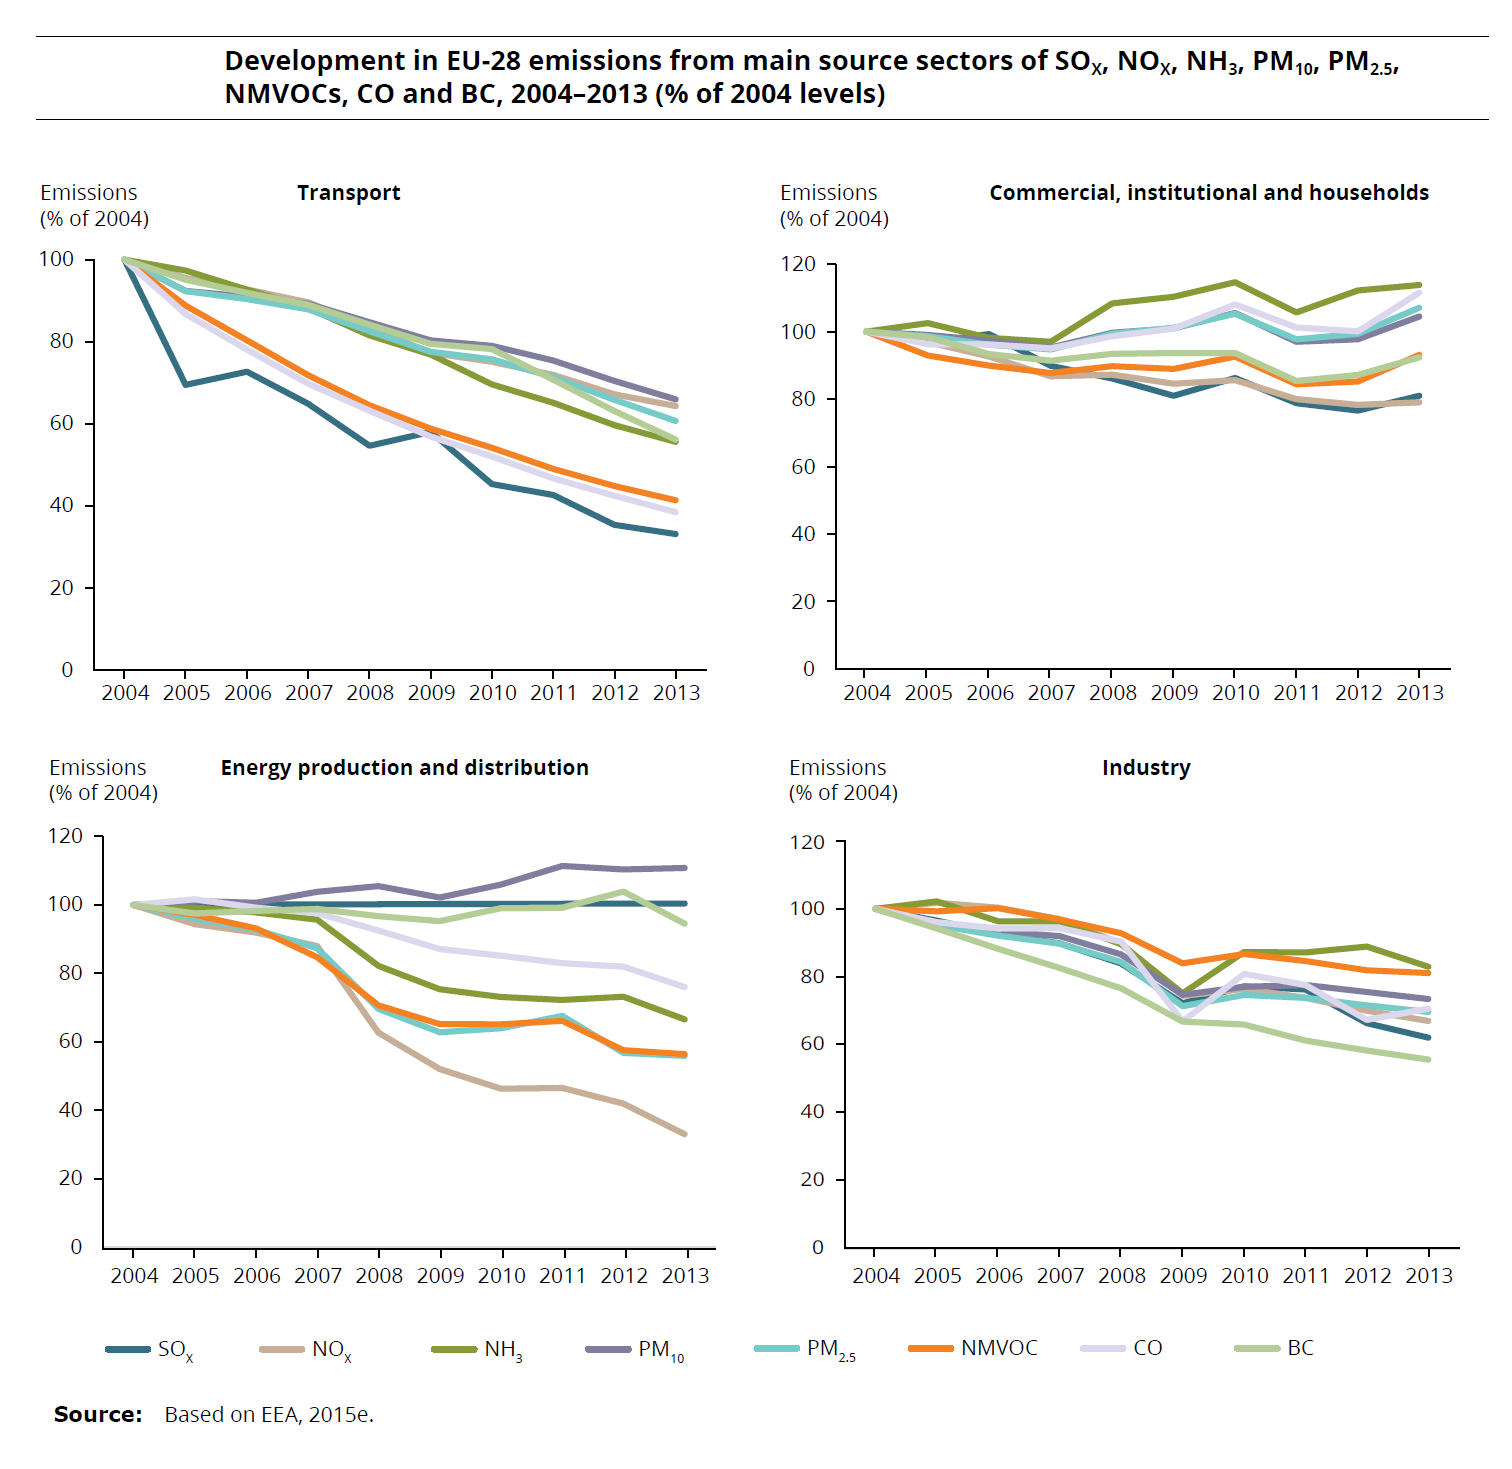 EEA GRAPHS - POLLUTANTS BY YEAR